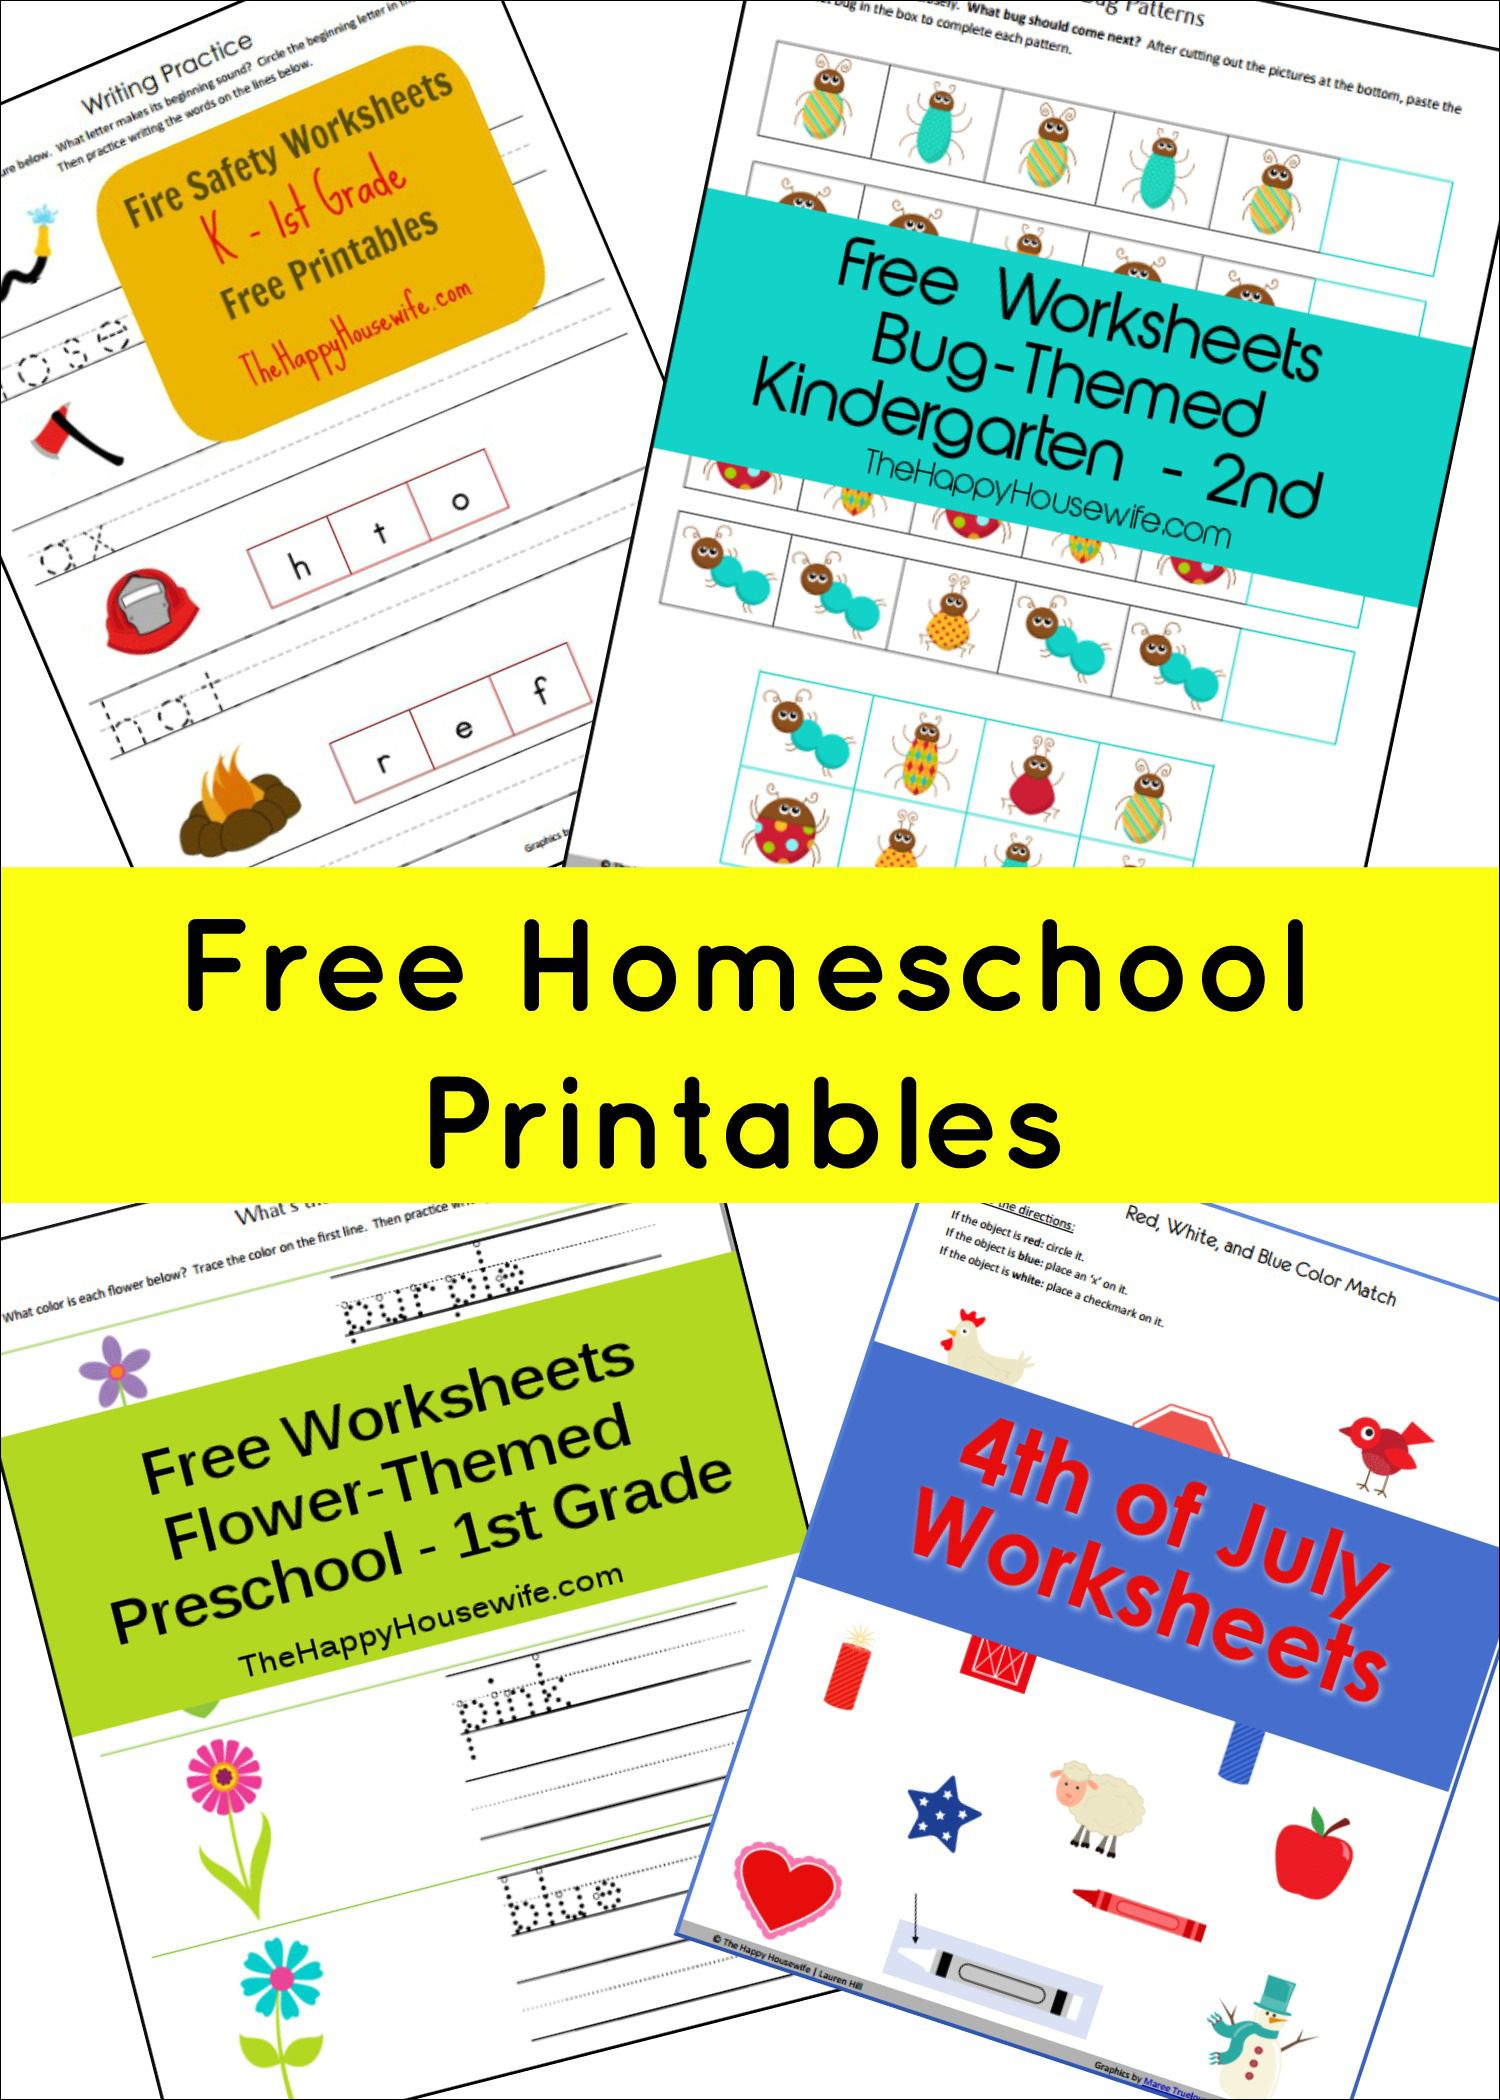 Free Printable Worksheets | Free Printables | Homeschool, Homeschool | Free Homeschool Printable Worksheets